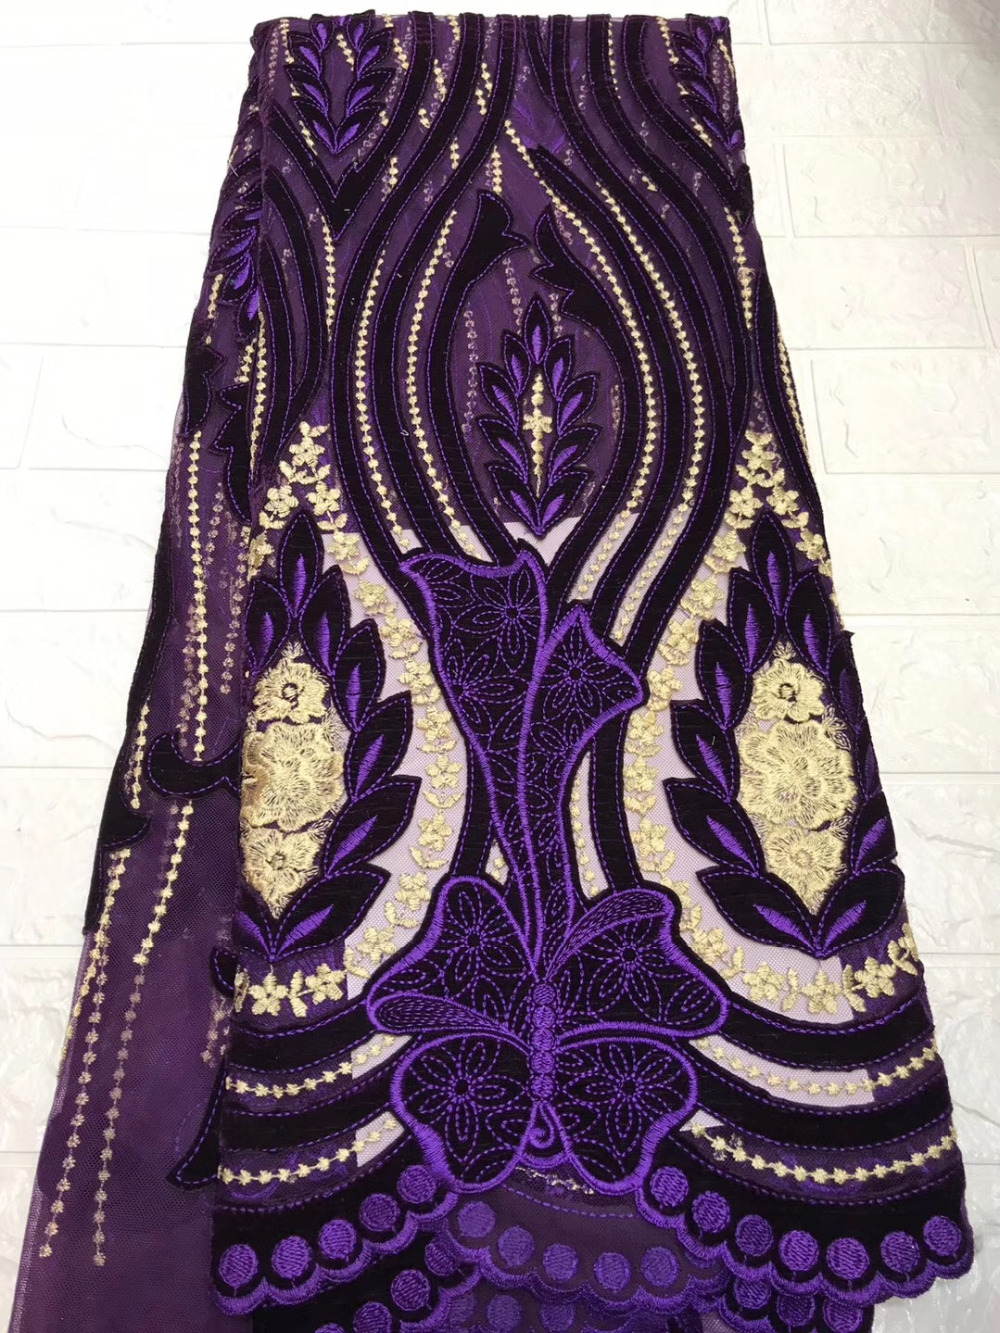 Purple African Tulle Lace Fabric High Quality Nigerian French Swiss voile Mesh Lace Fabrics 5 yards